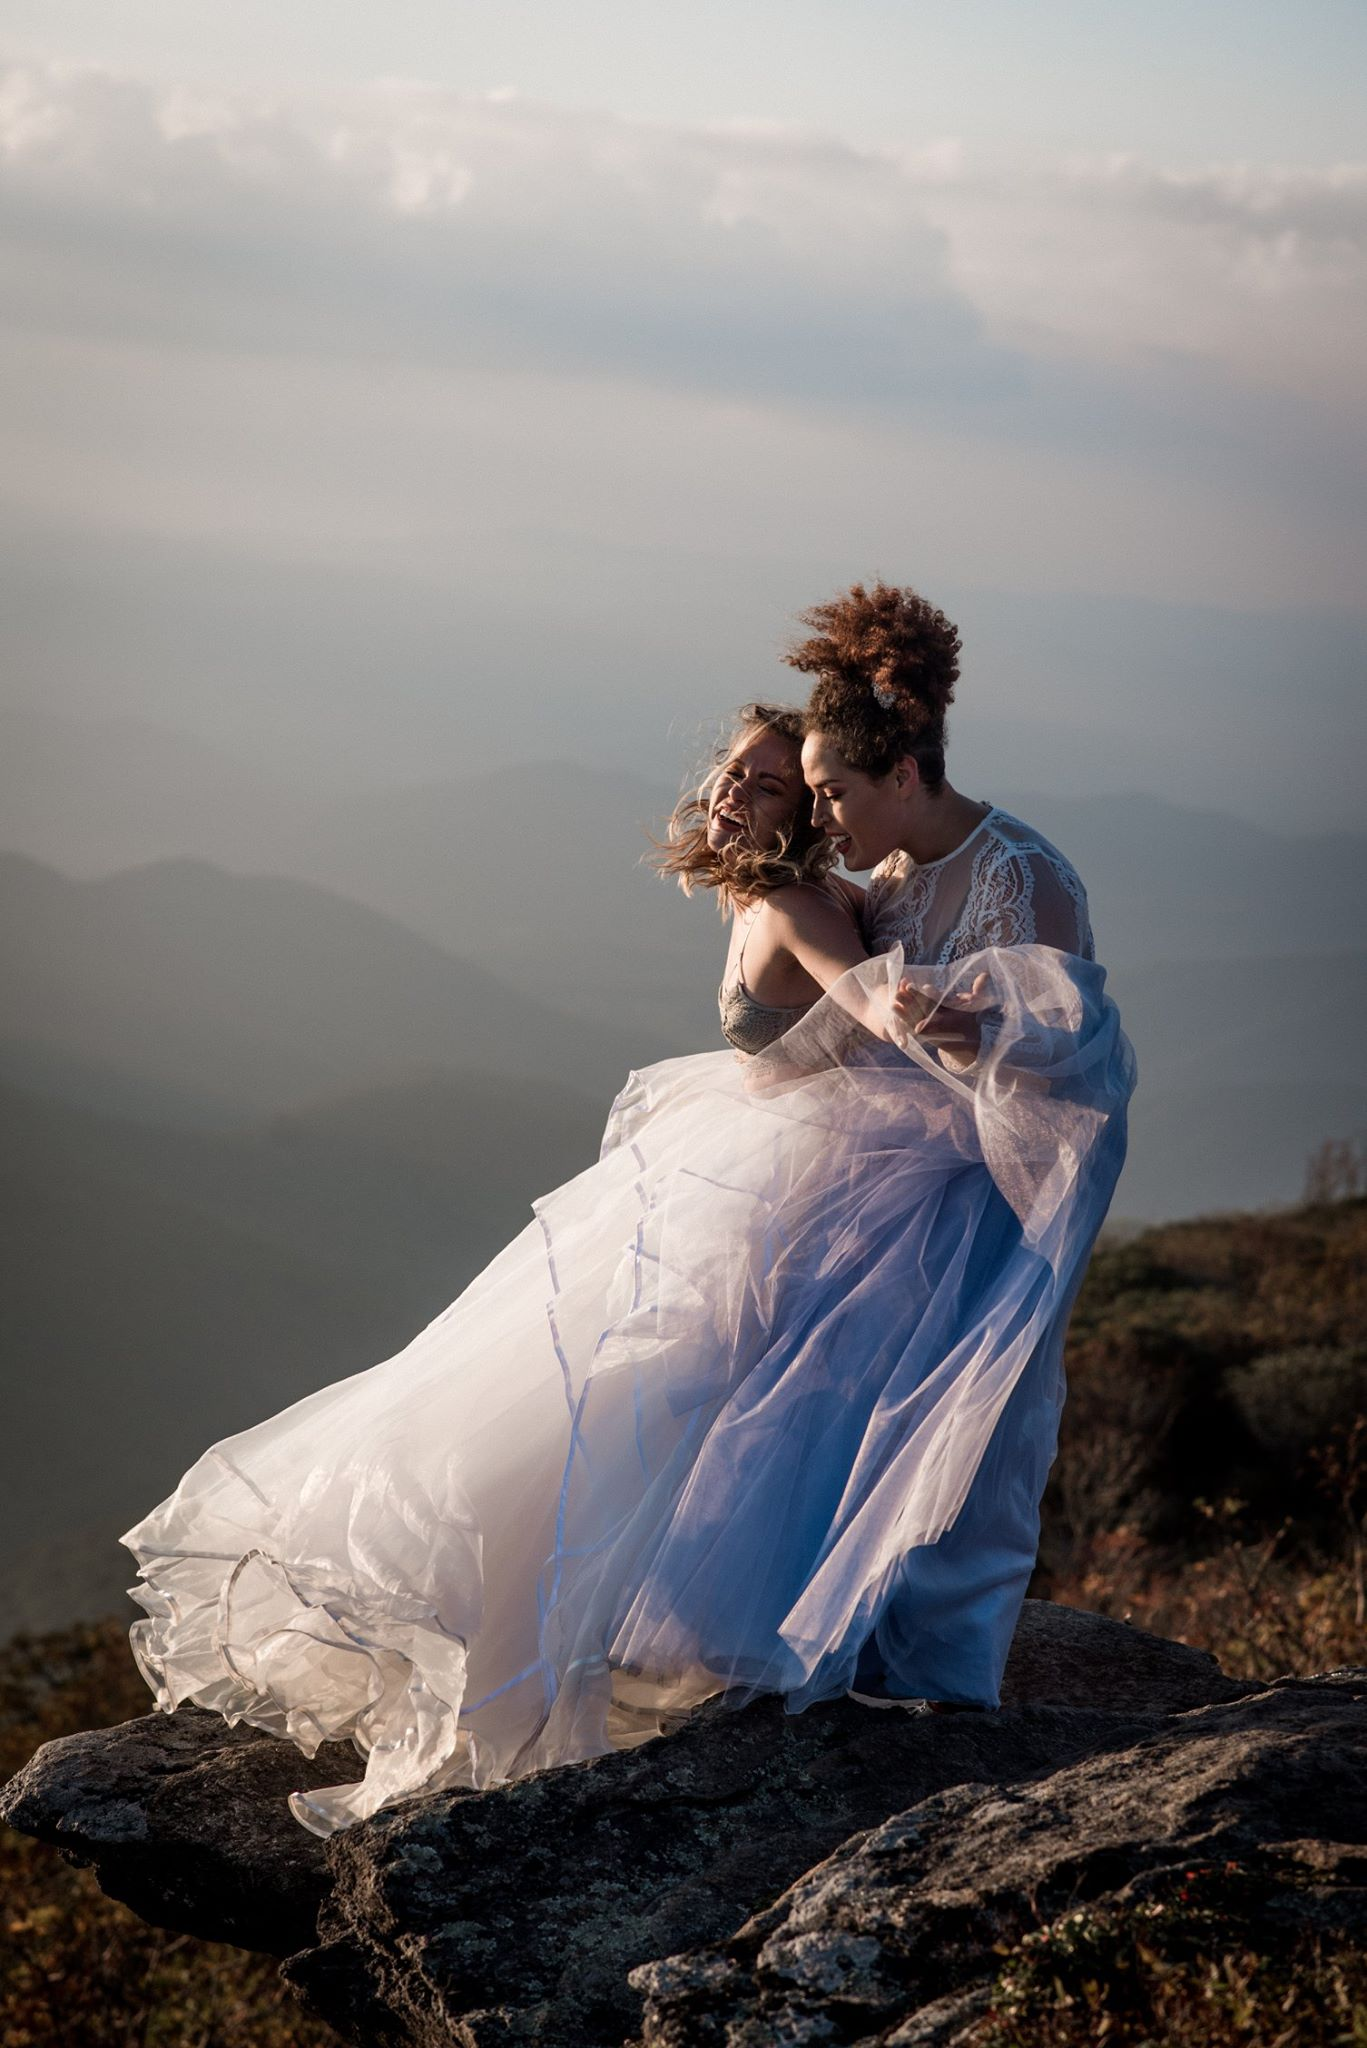 Bride and bride laughing during sunset on mountain